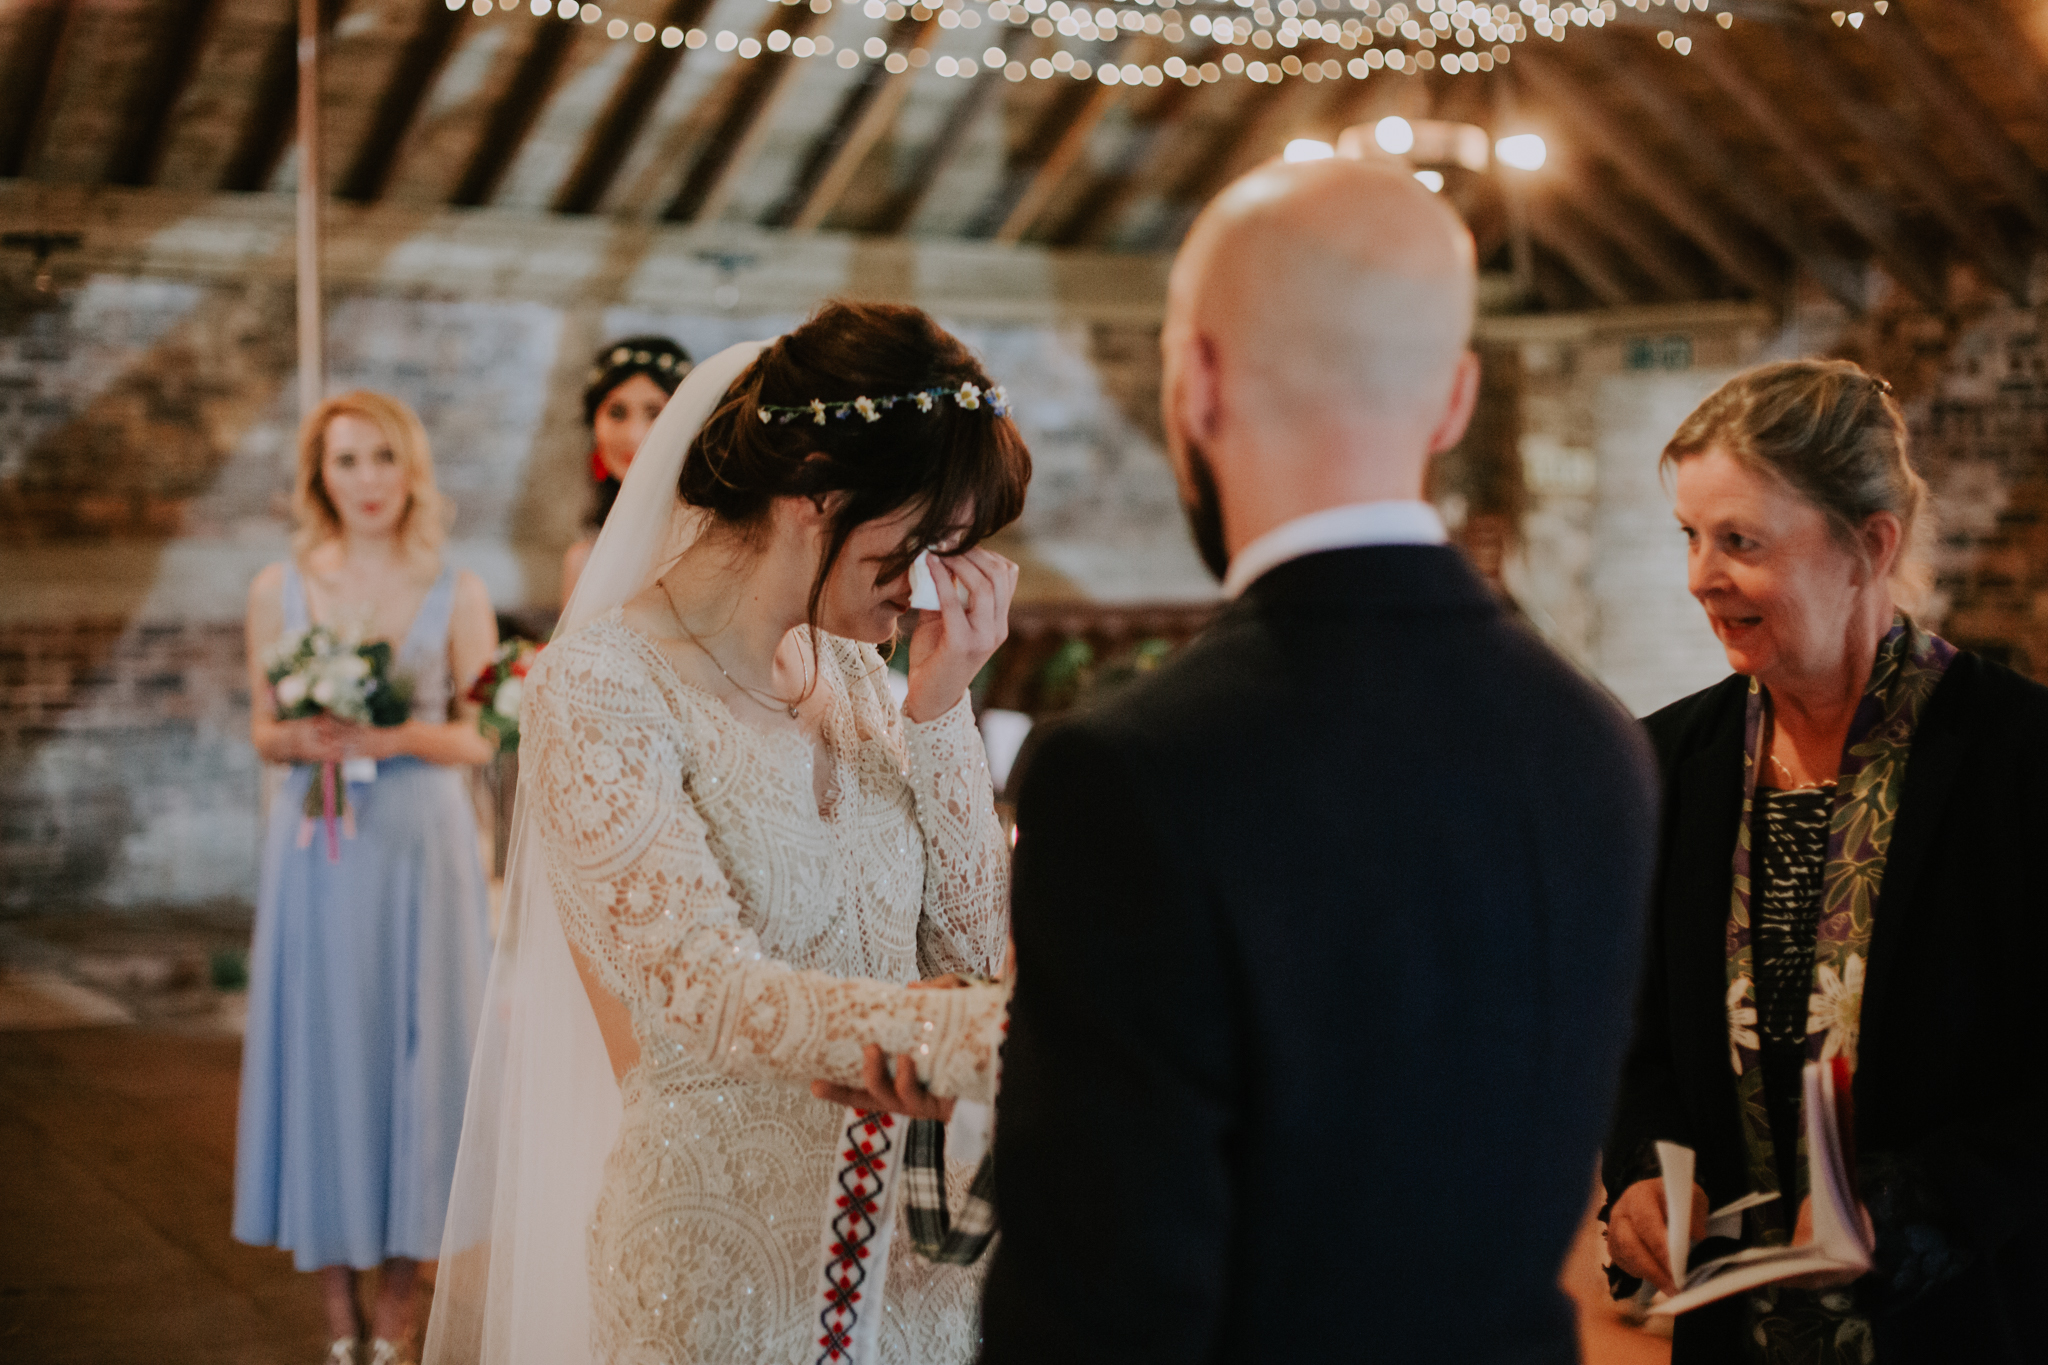 Bride is crying during the wedding ceremony